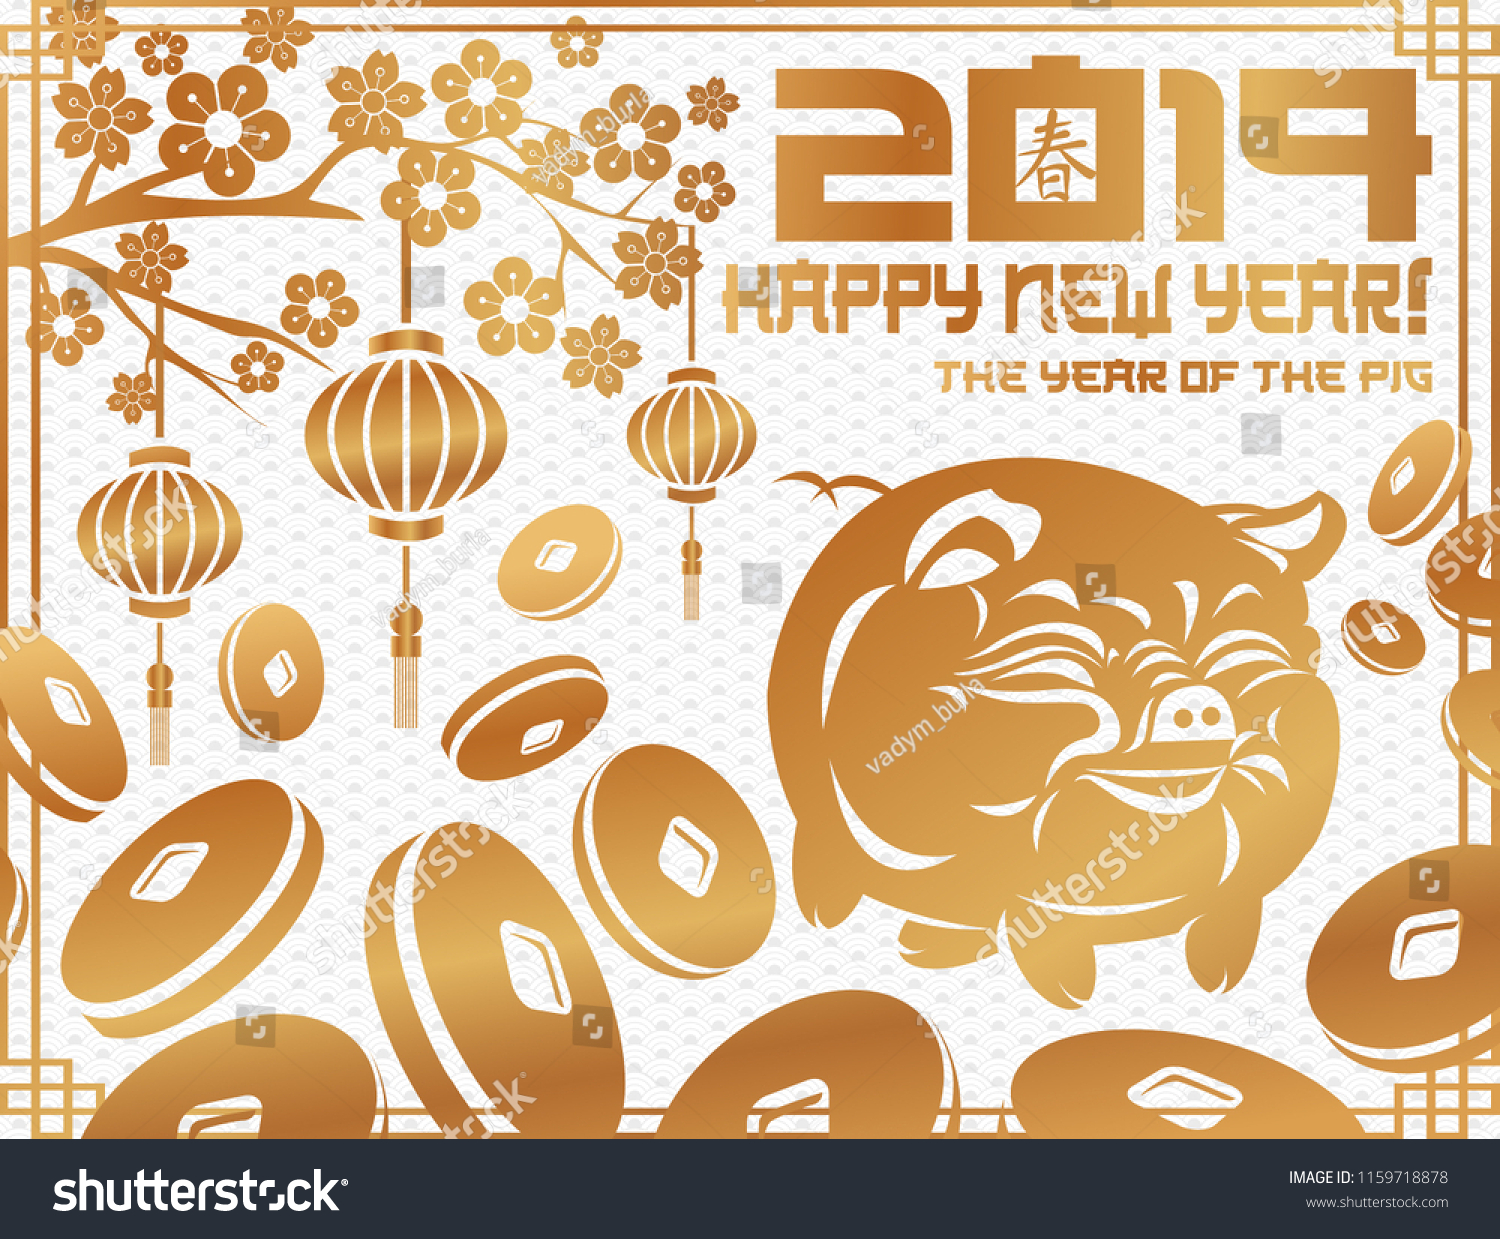 happy chinese new year 2019 of the pig abstract clip art flat design lanterns